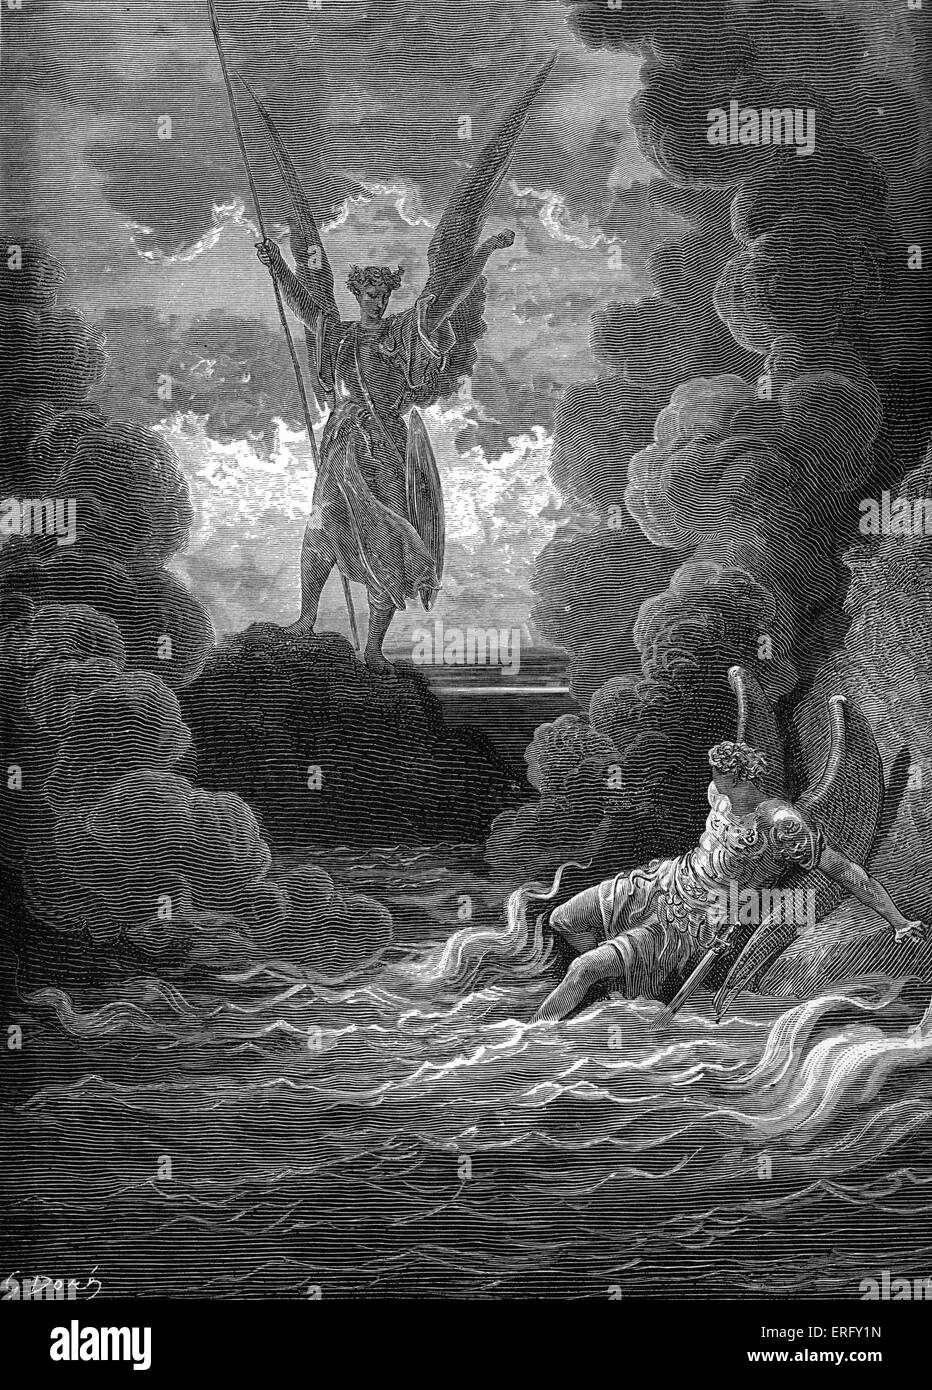 John miltons presentation of satan in paradise lost